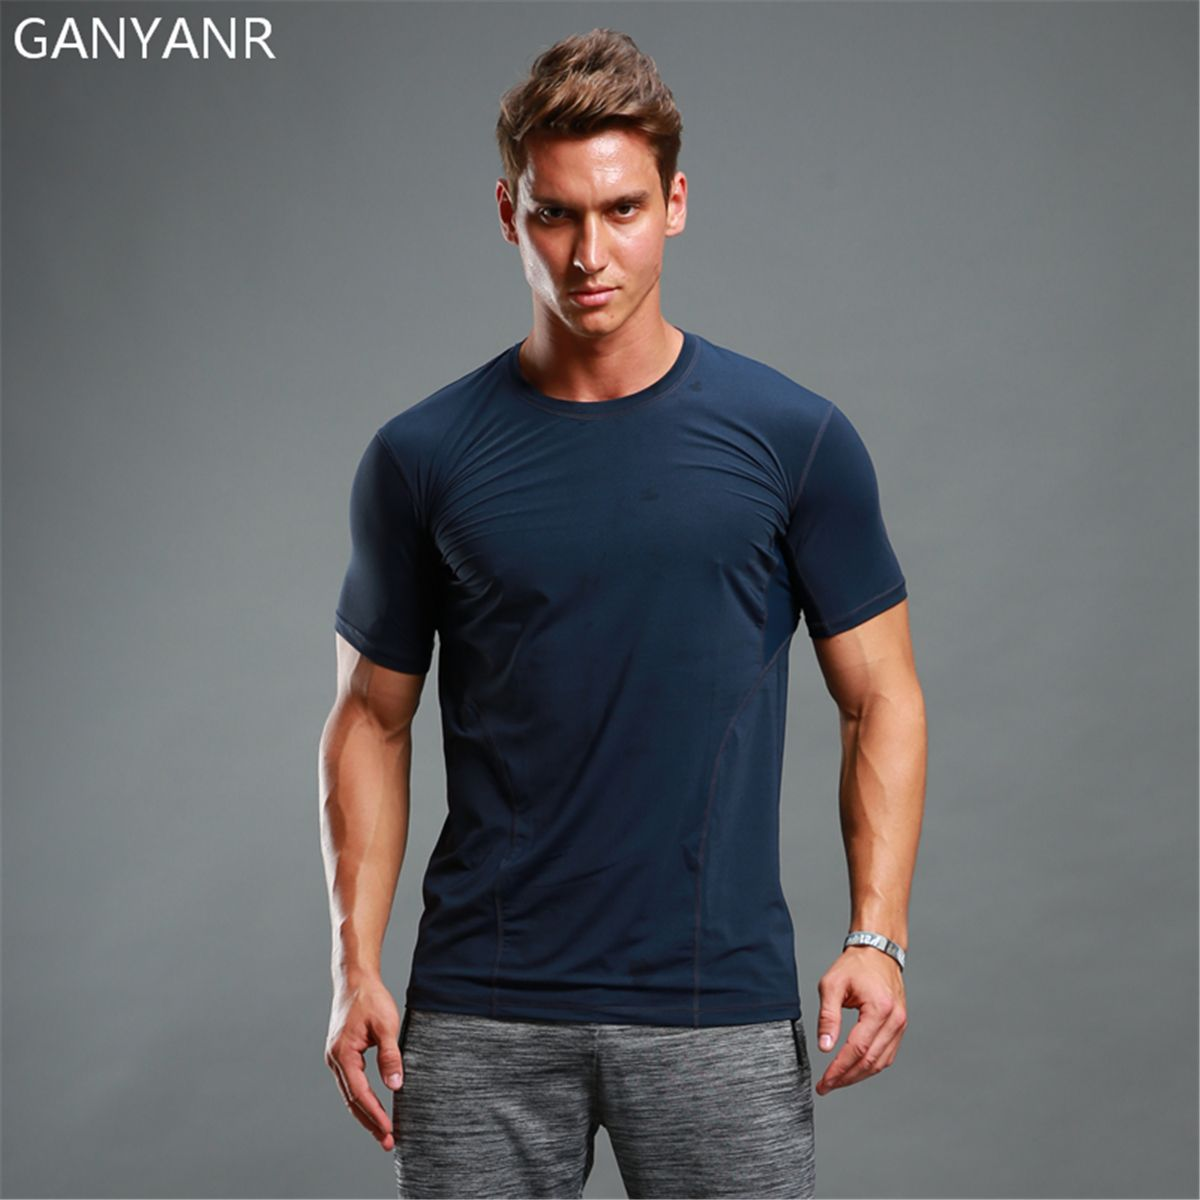 GANYANR Brand Running T Shirt Men Basketball Tennis Sportswear Compression quick dry Tops Slim Fit Short Sleeve Exercise Tights